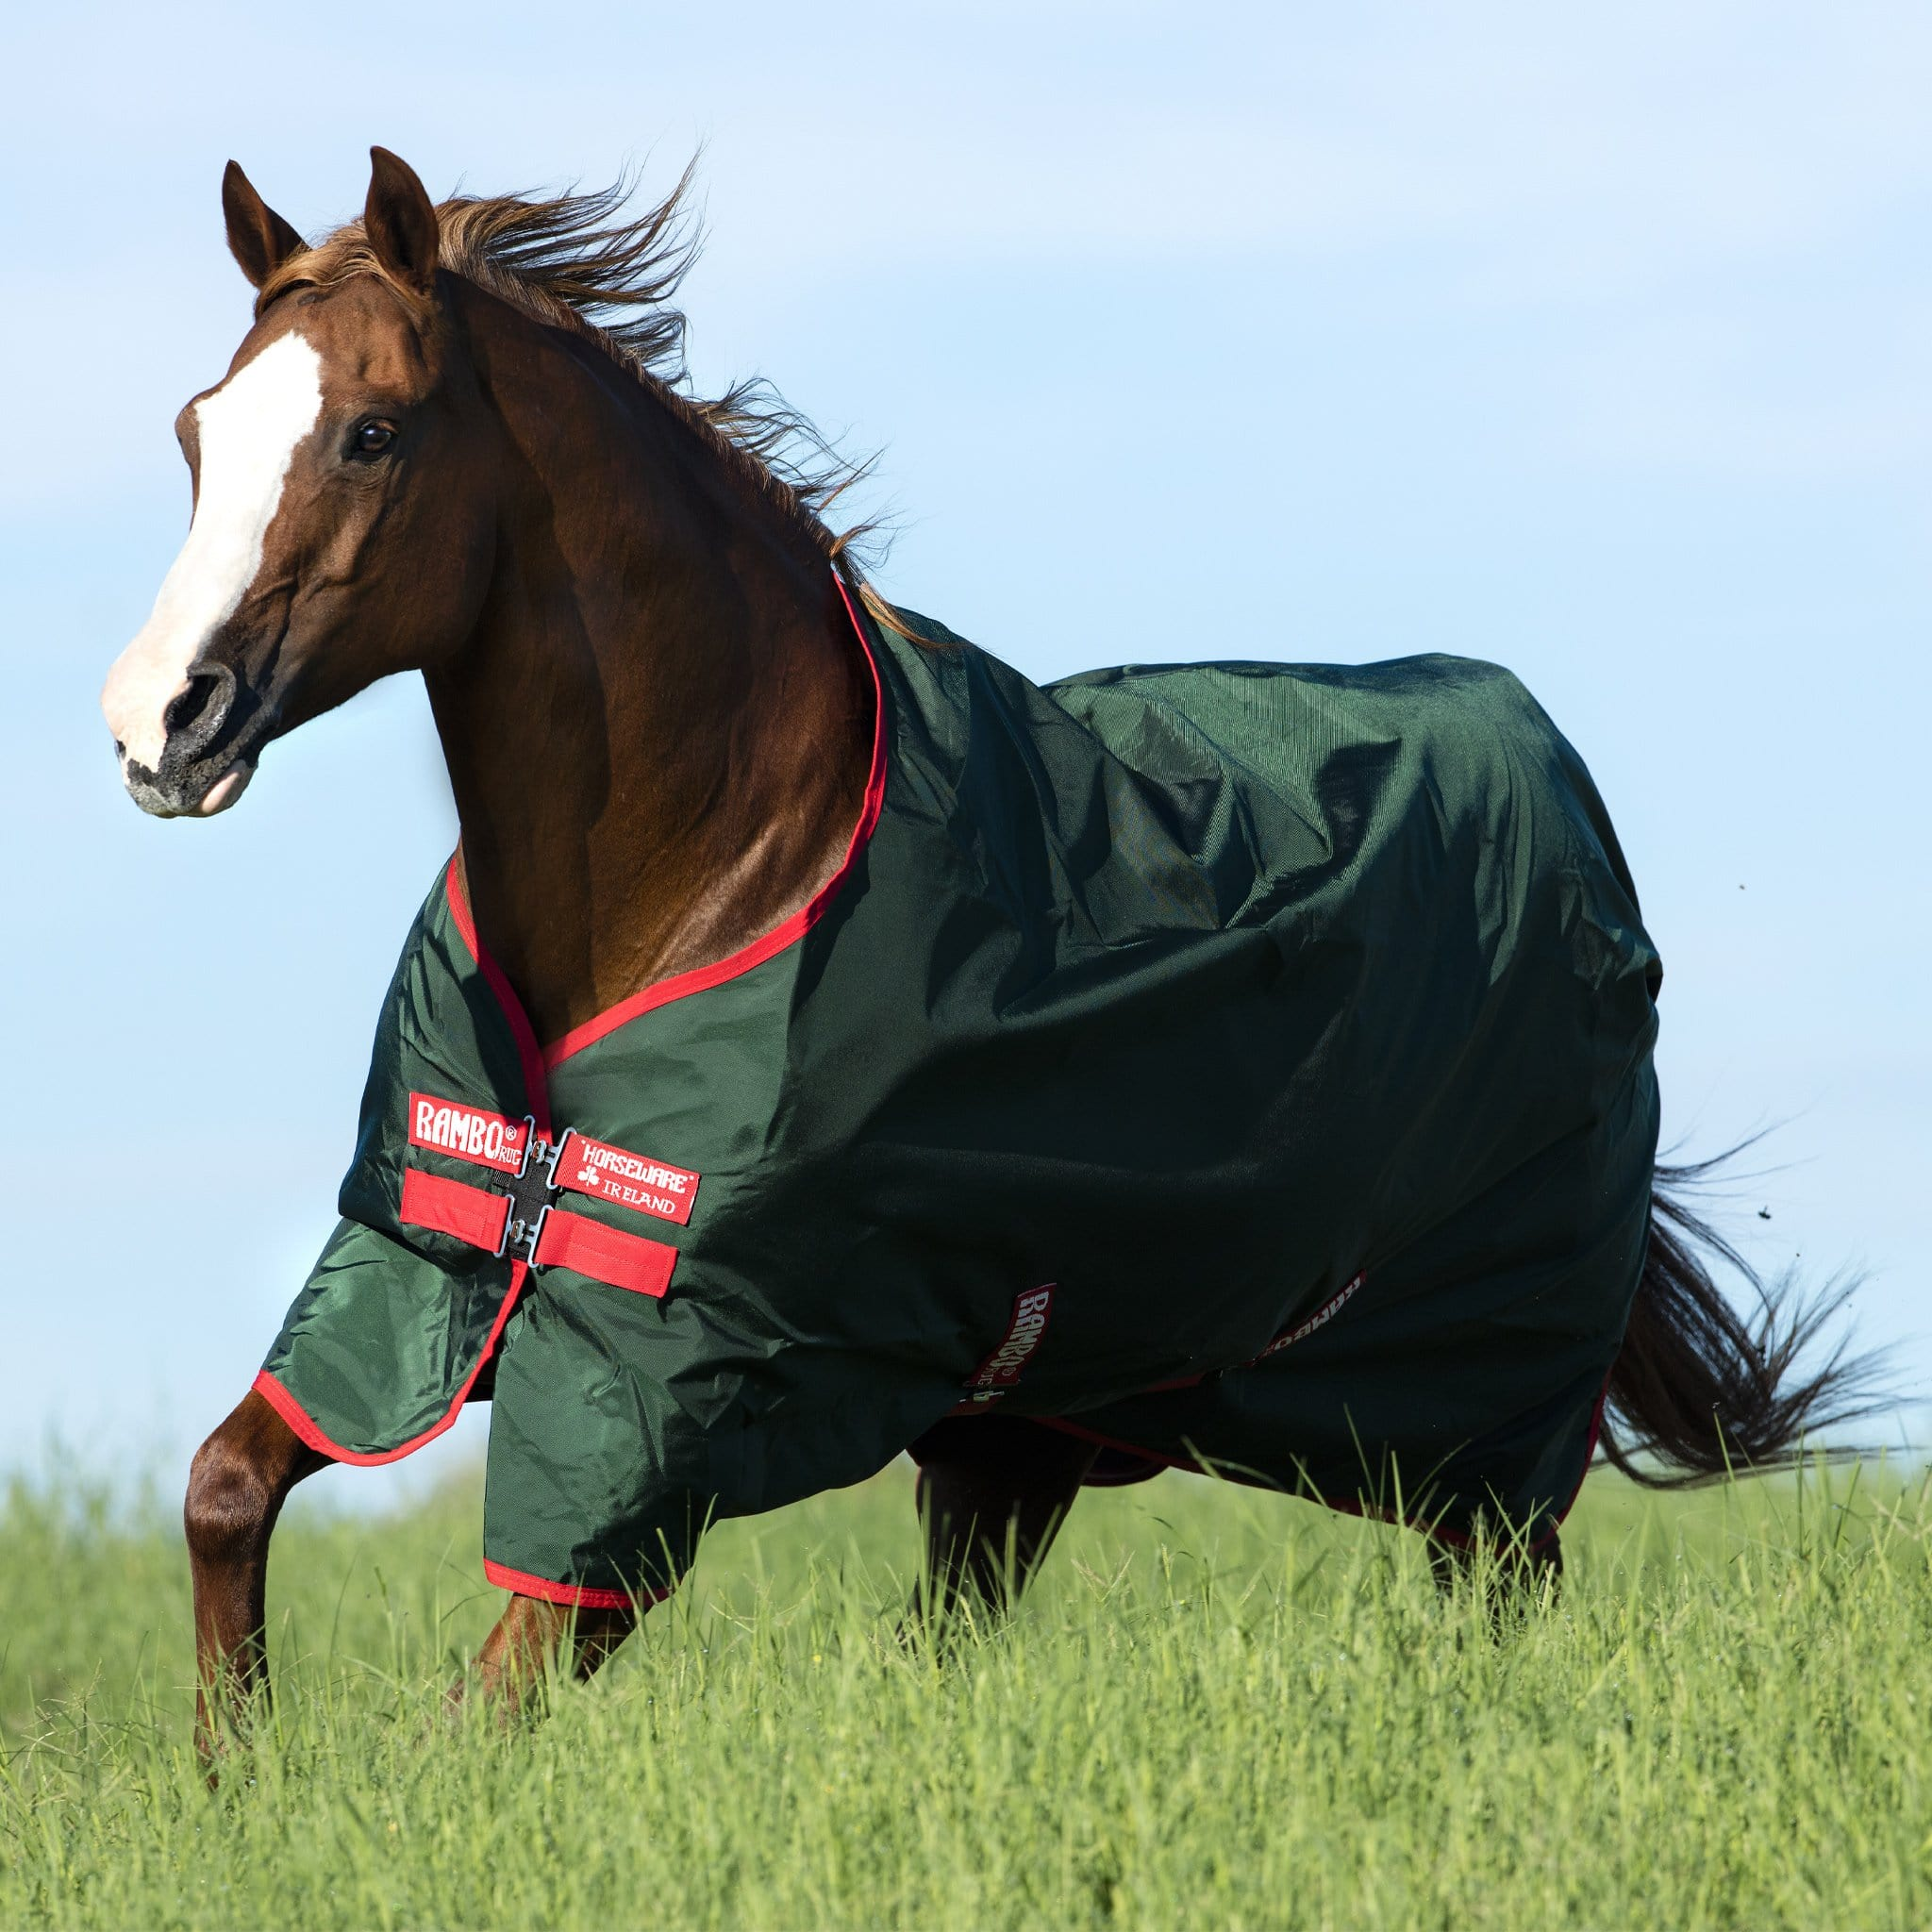 Rambo Original 0g Lite Standard Neck Turnout Rug Green AAAA03 On Chestnut Horse In The Field.